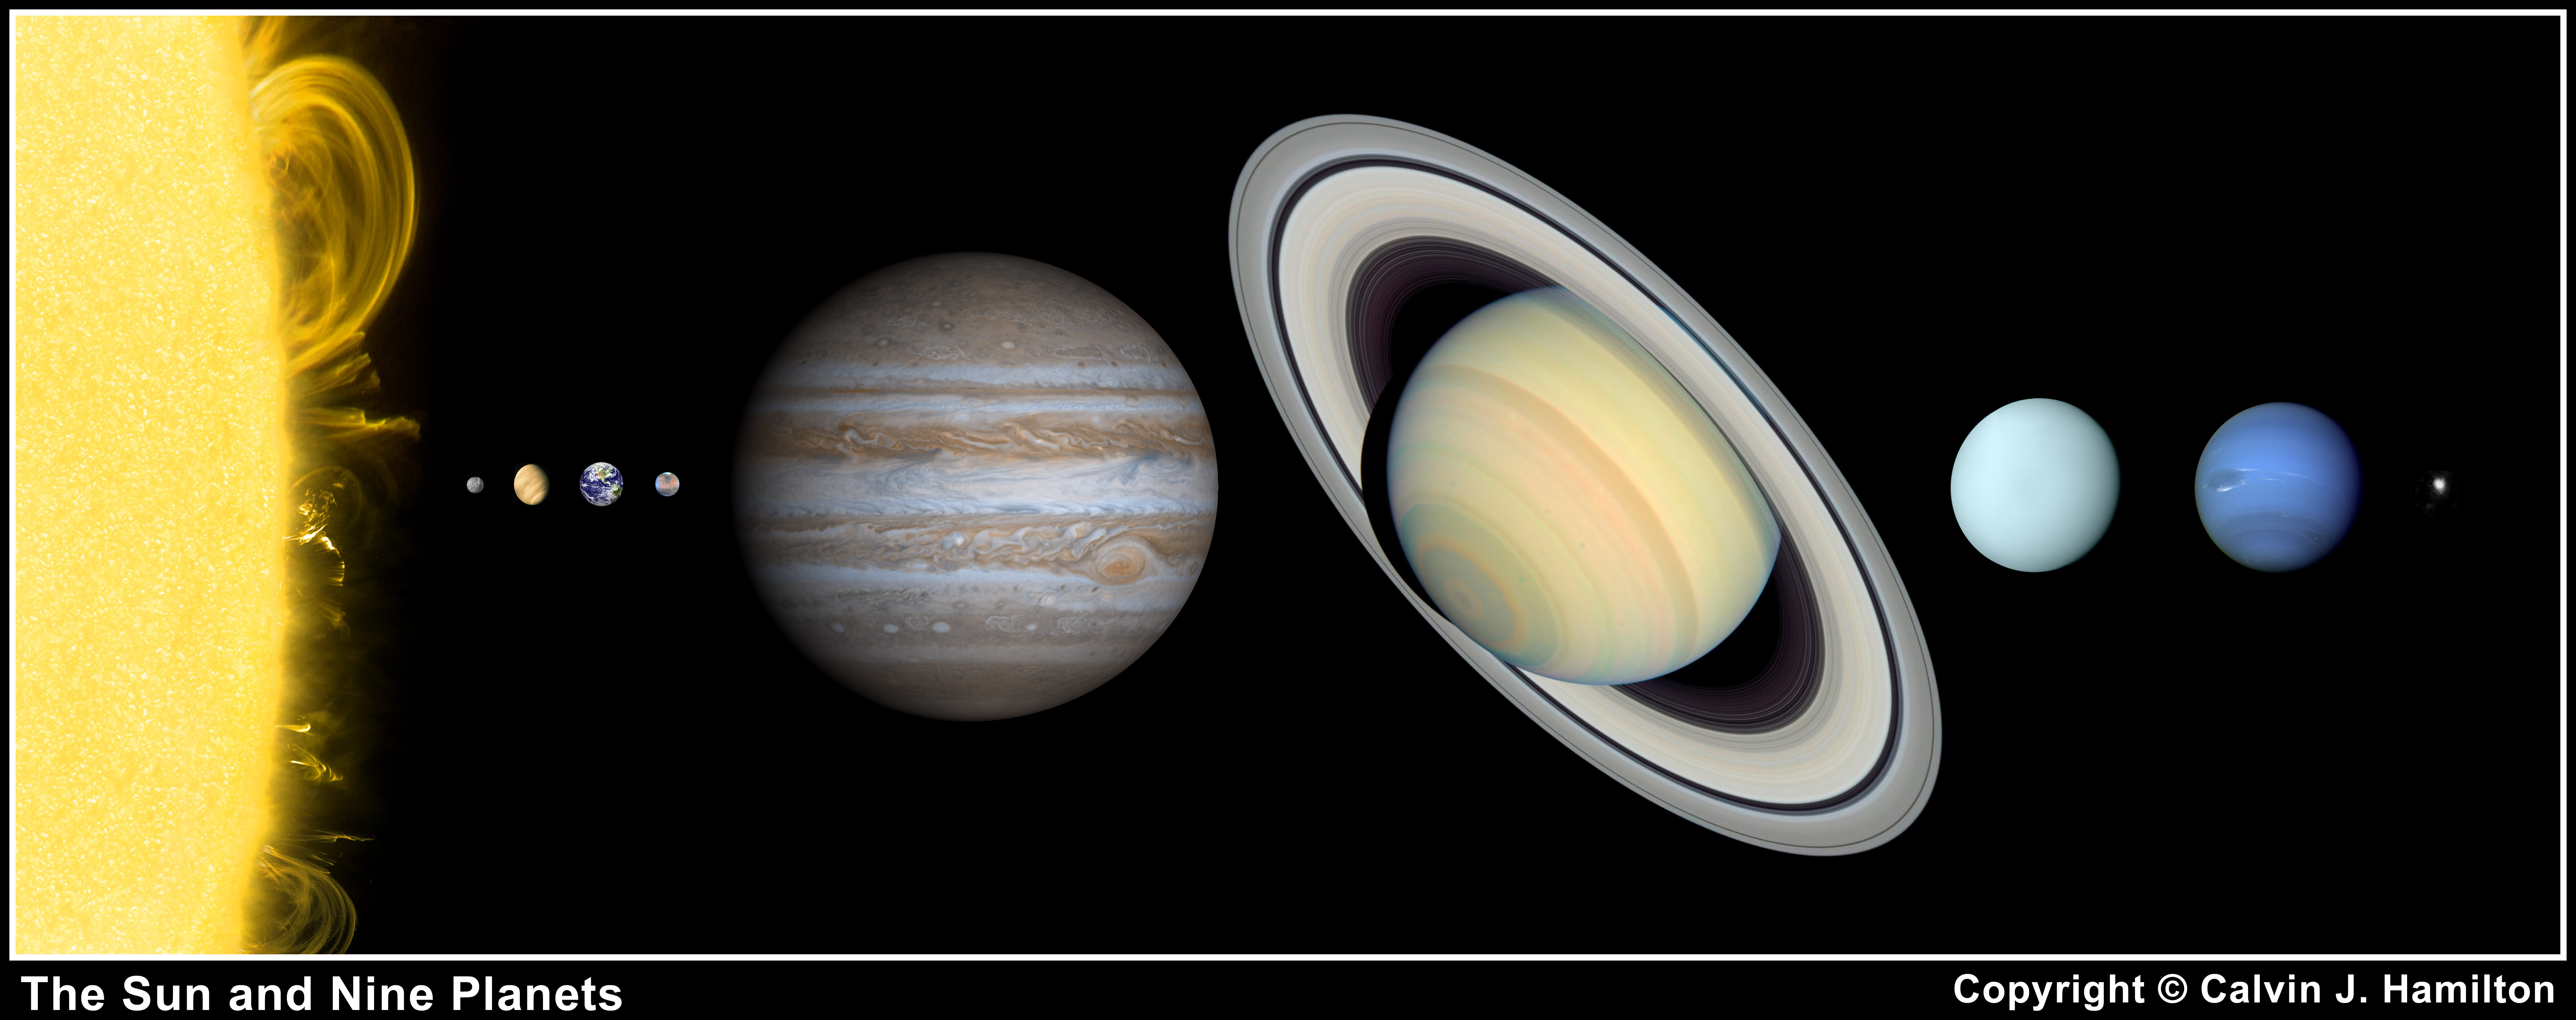 Our Solar System Planets In Order From The Sun